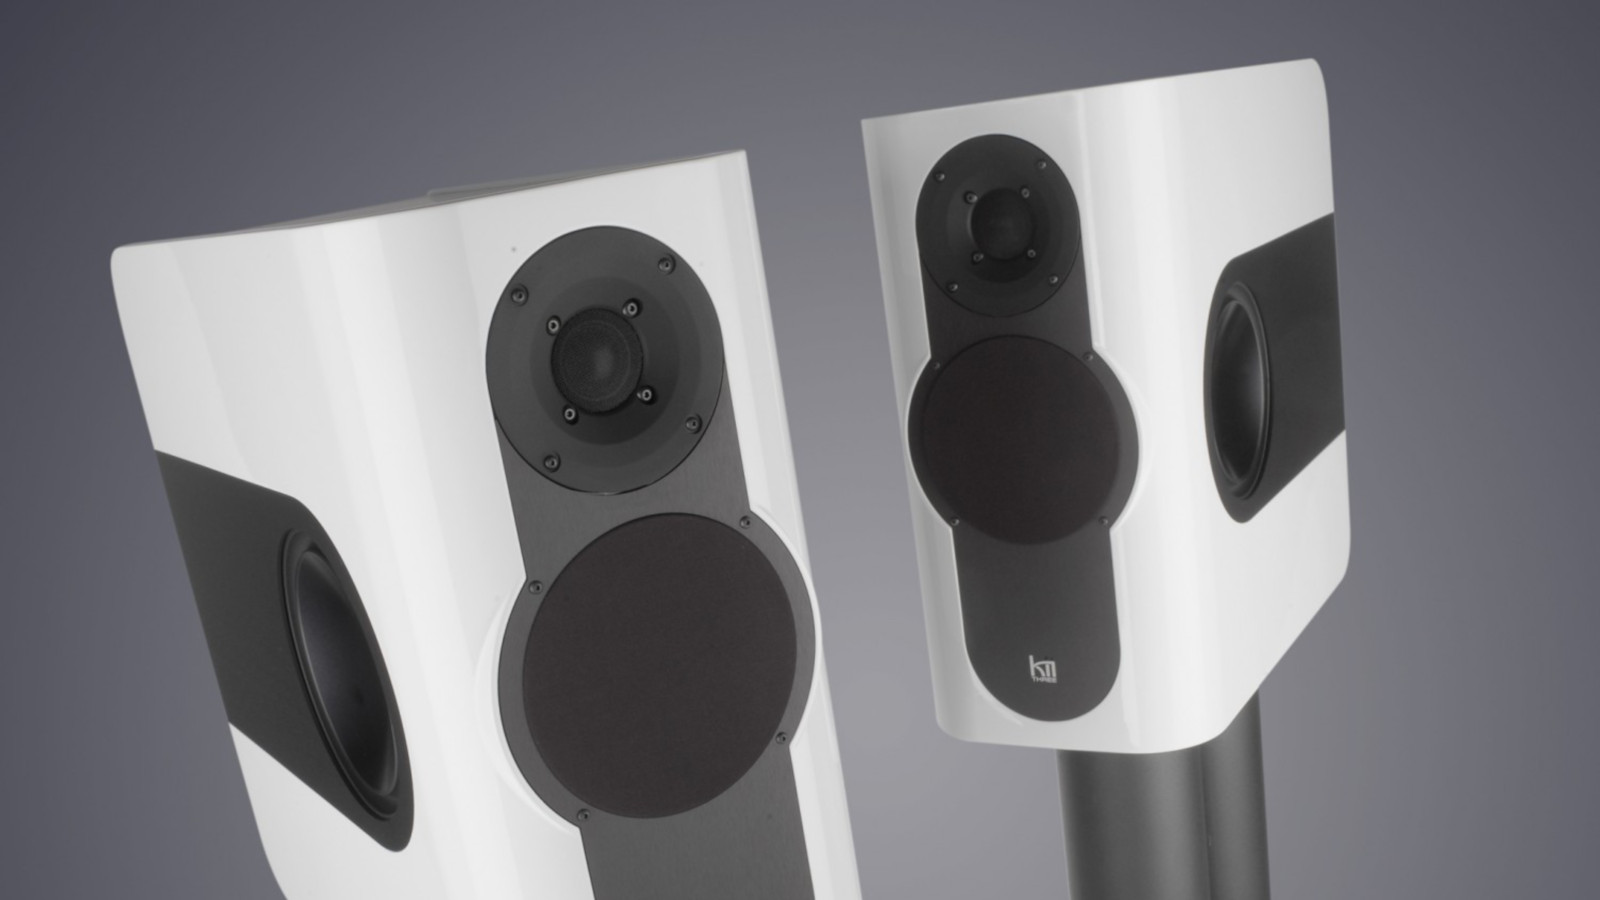 kii-audio-three-loudspeakers.jpg